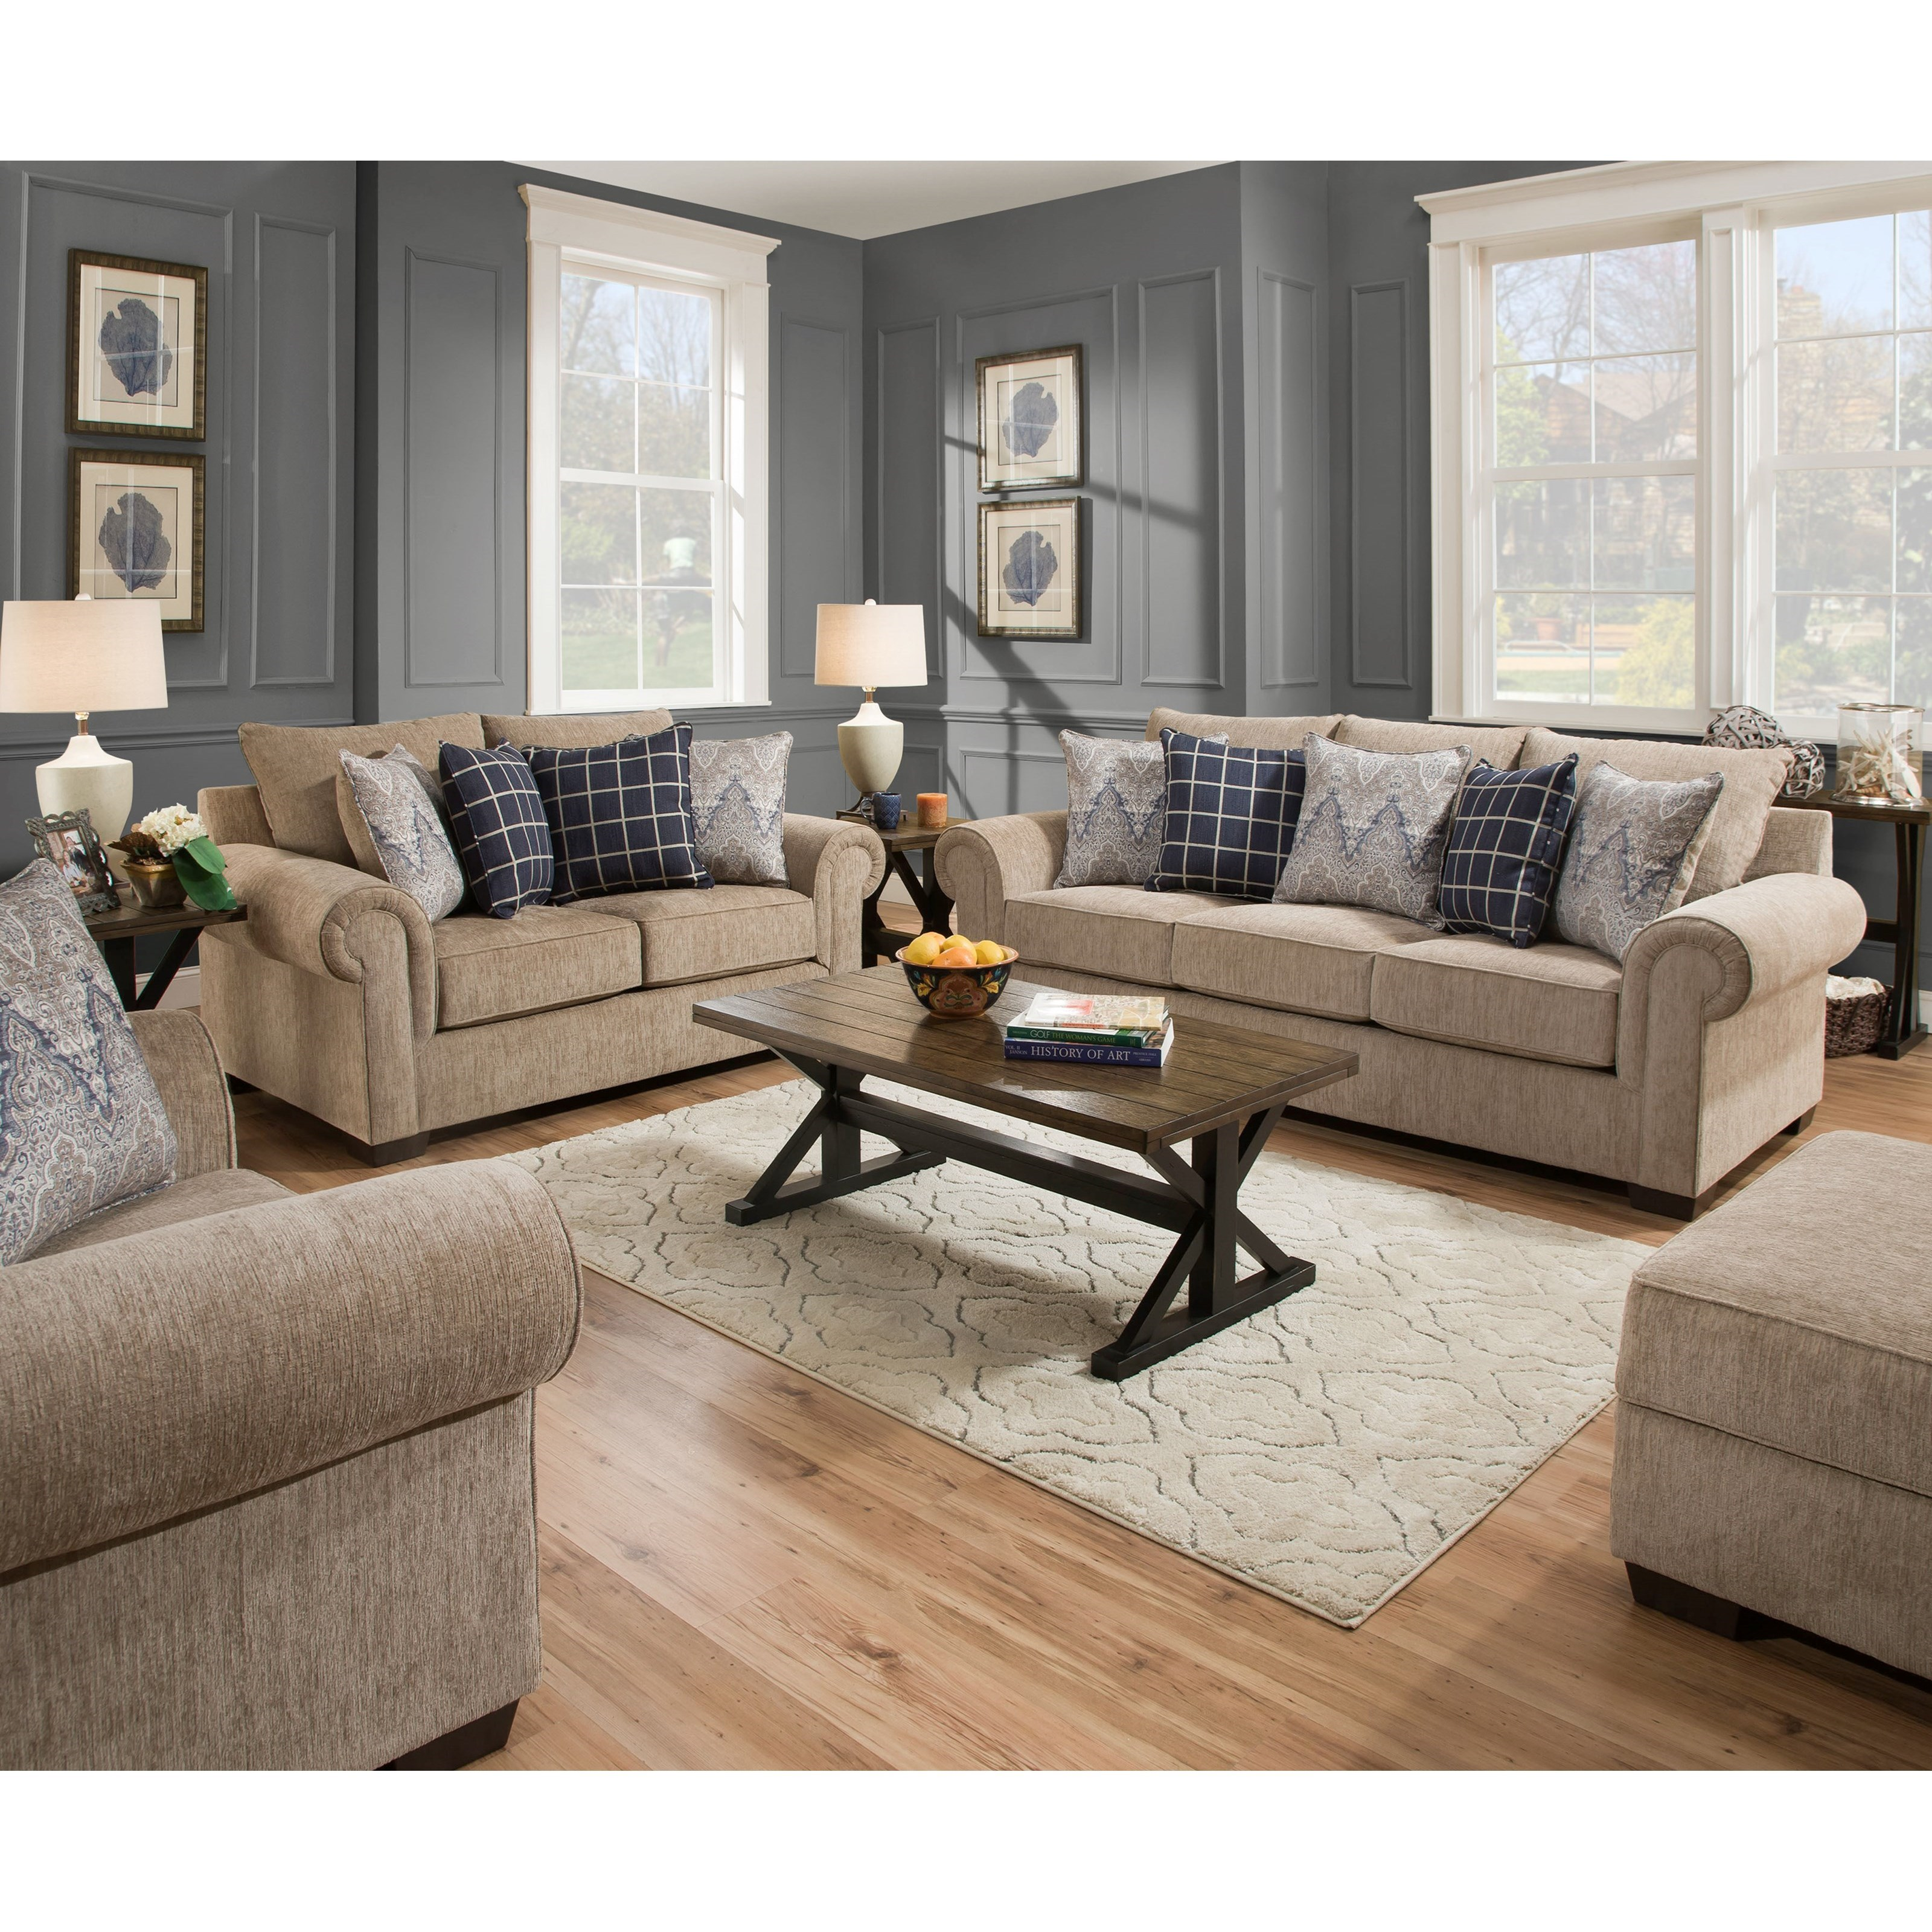 7592BR Living Room Group by United Furniture Industries at Dream Home Interiors